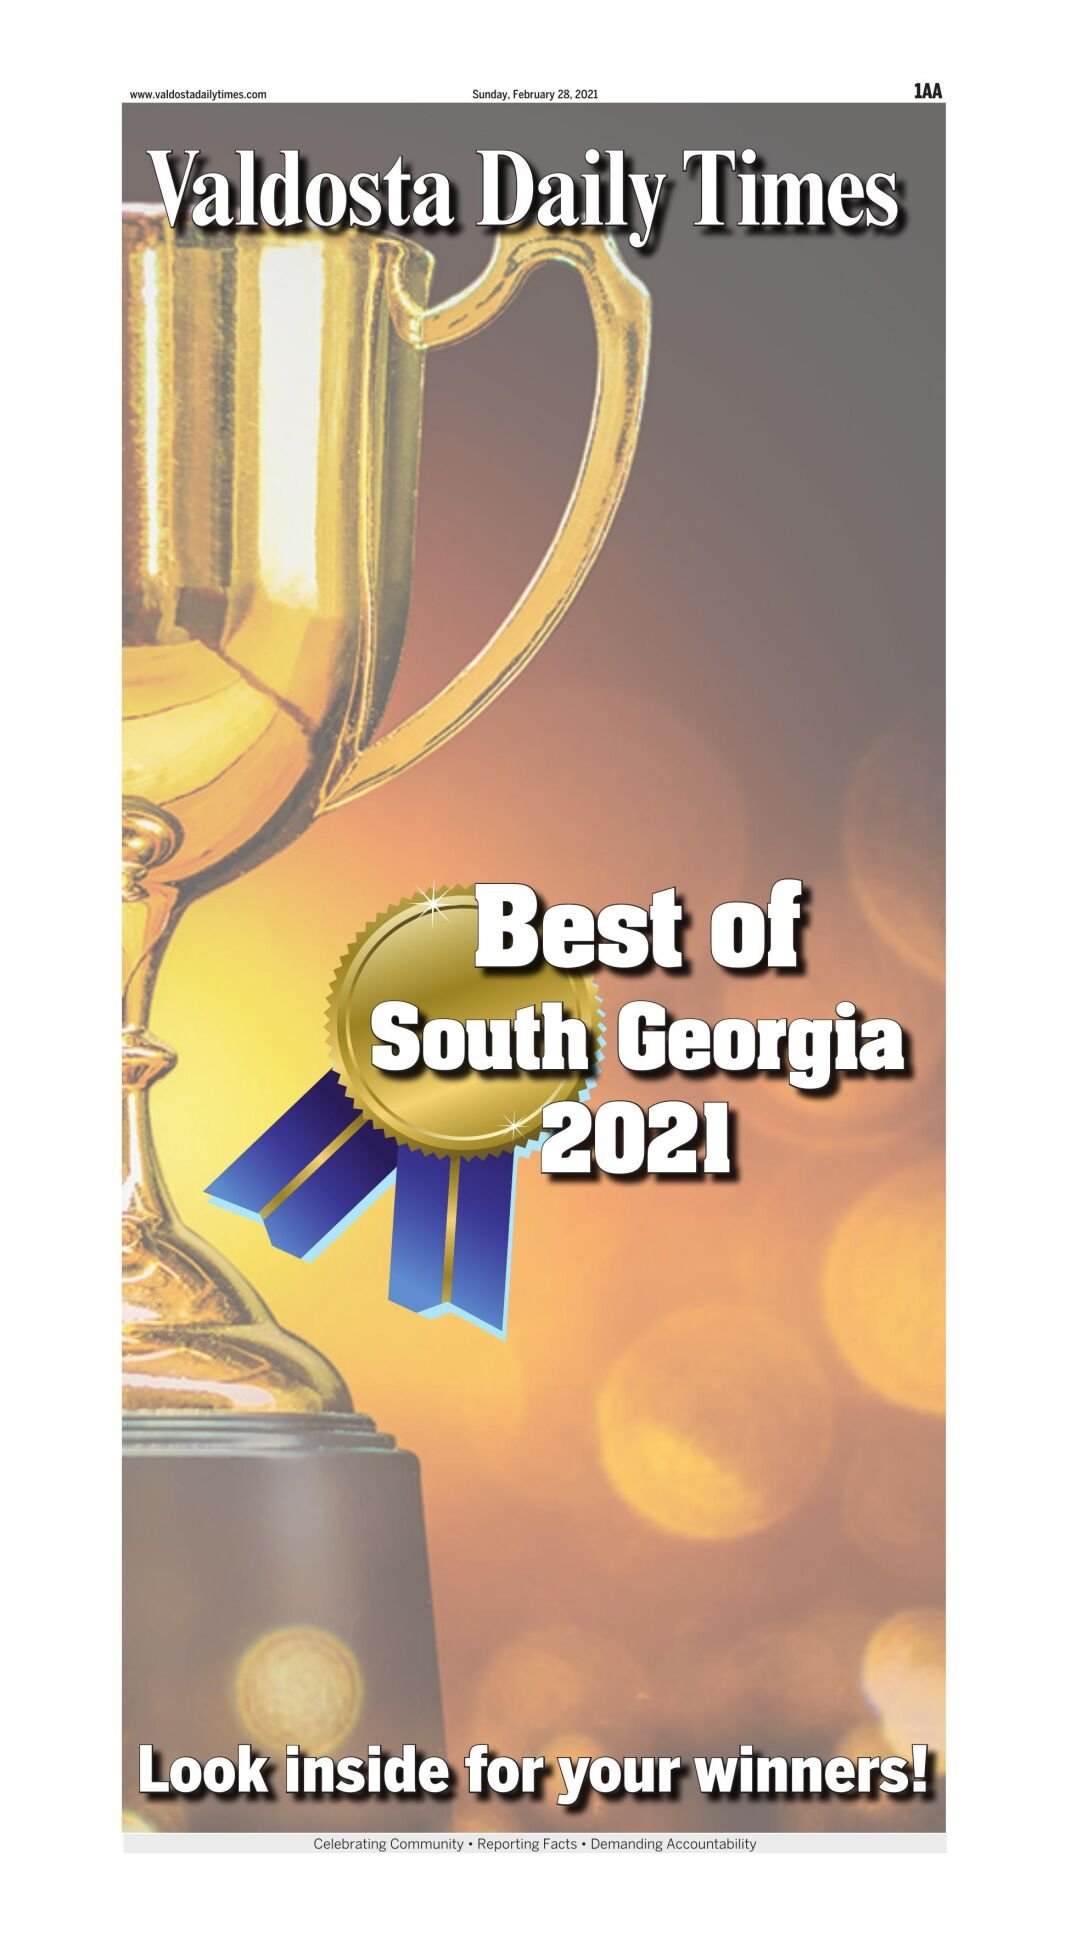 Best of South Georgia 2021